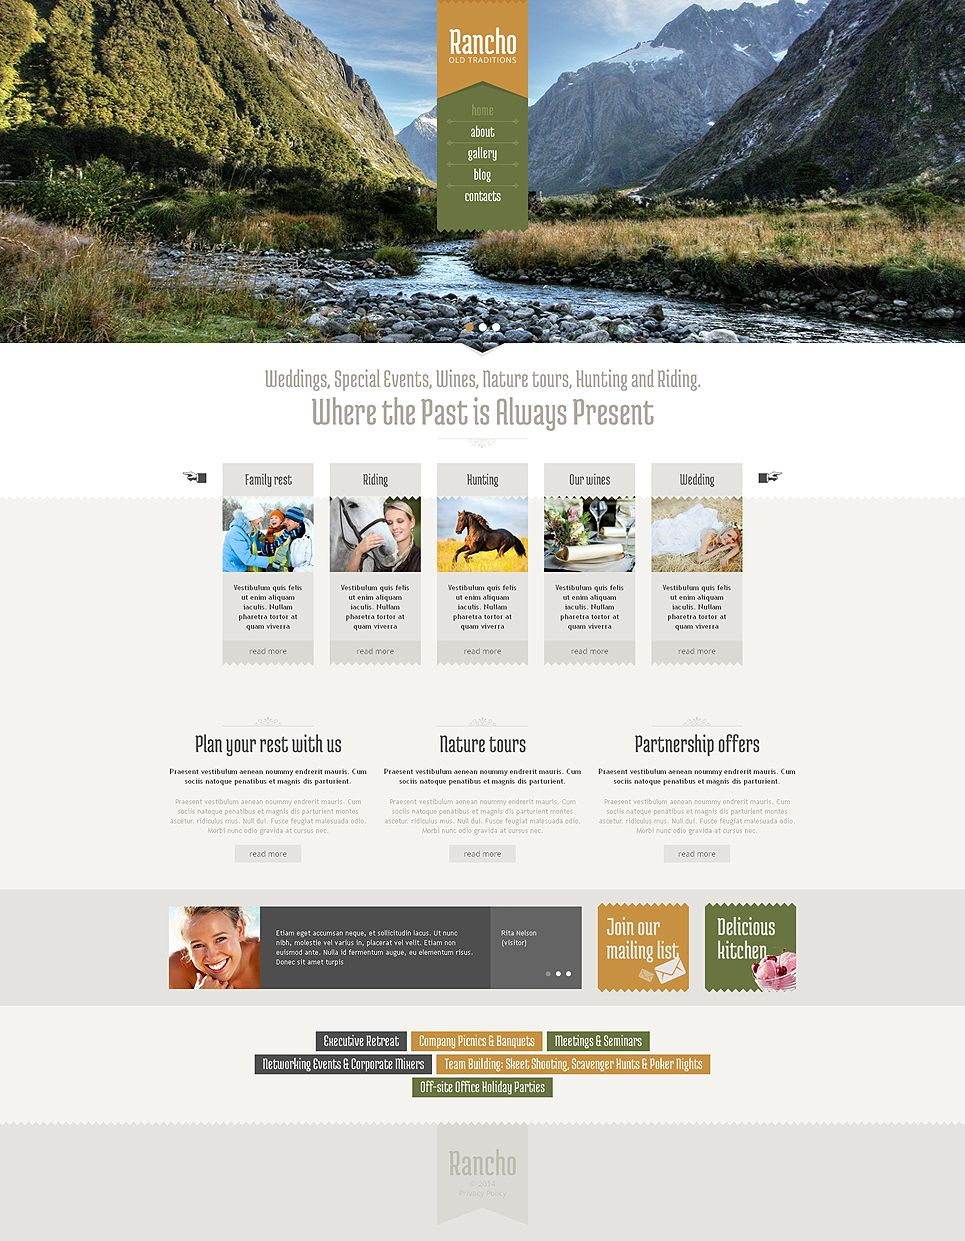 drupal themes guide